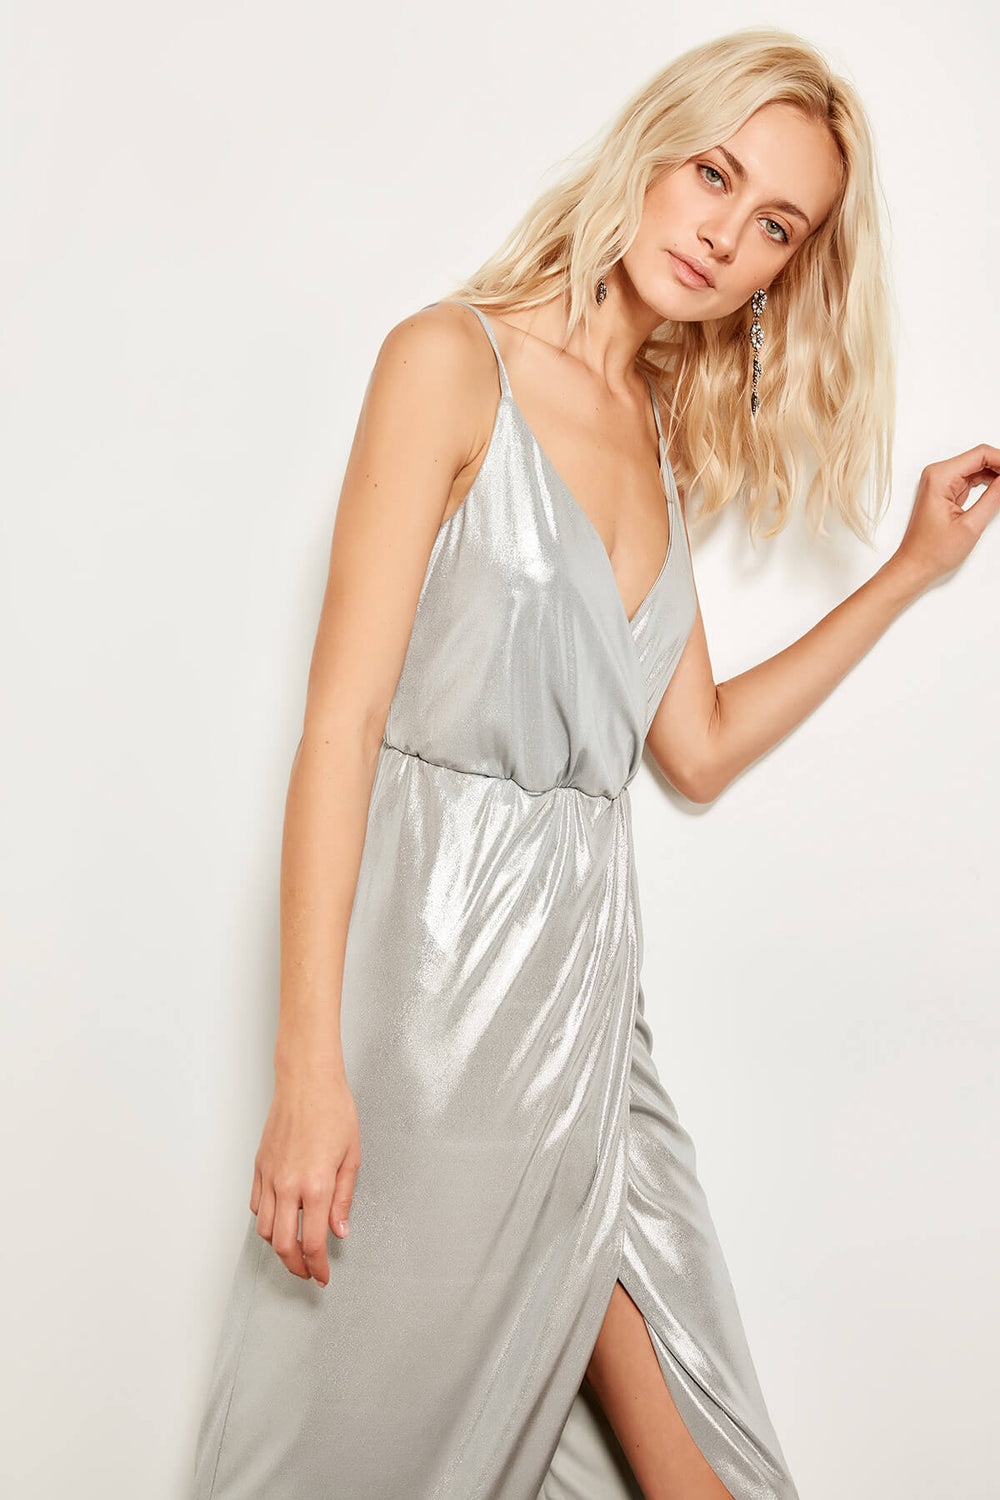 Silver-breasted Collar Dress - Top Maxy